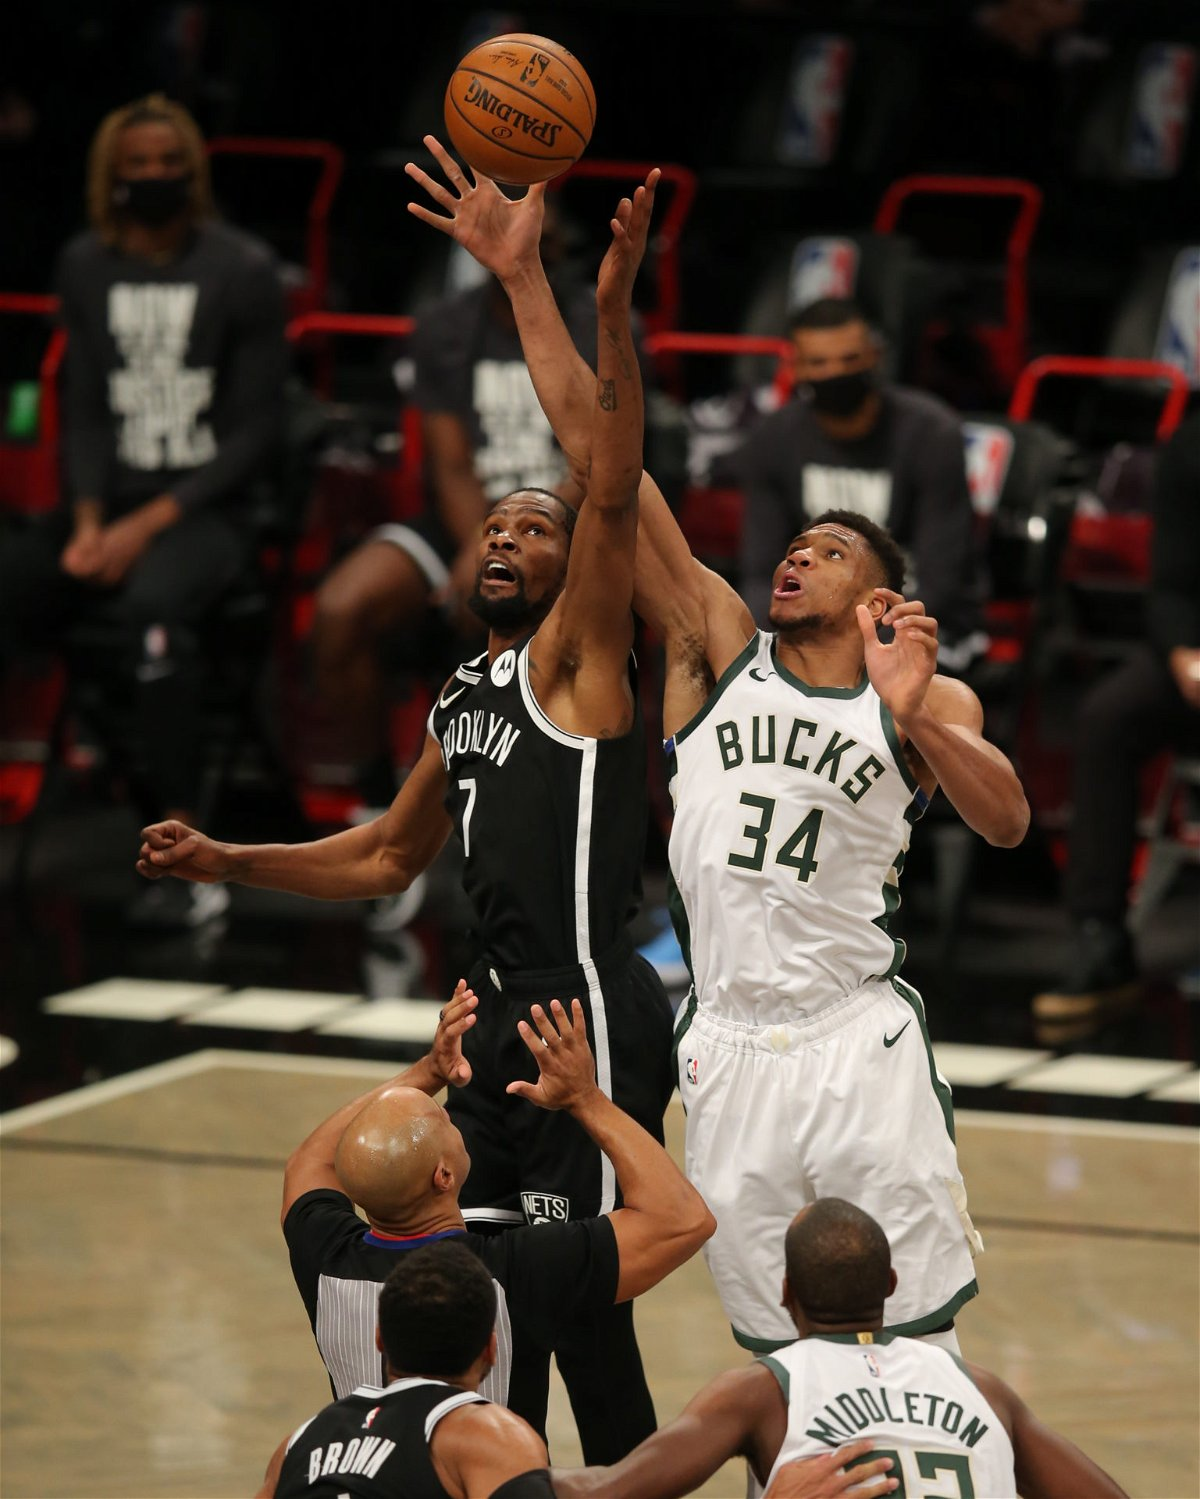 Will Giannis Antetokounmpo & Kevin Durant Play Tonight? Bucks vs Nets: Predictions, Injury Report & Lineups - Future Tech Trends